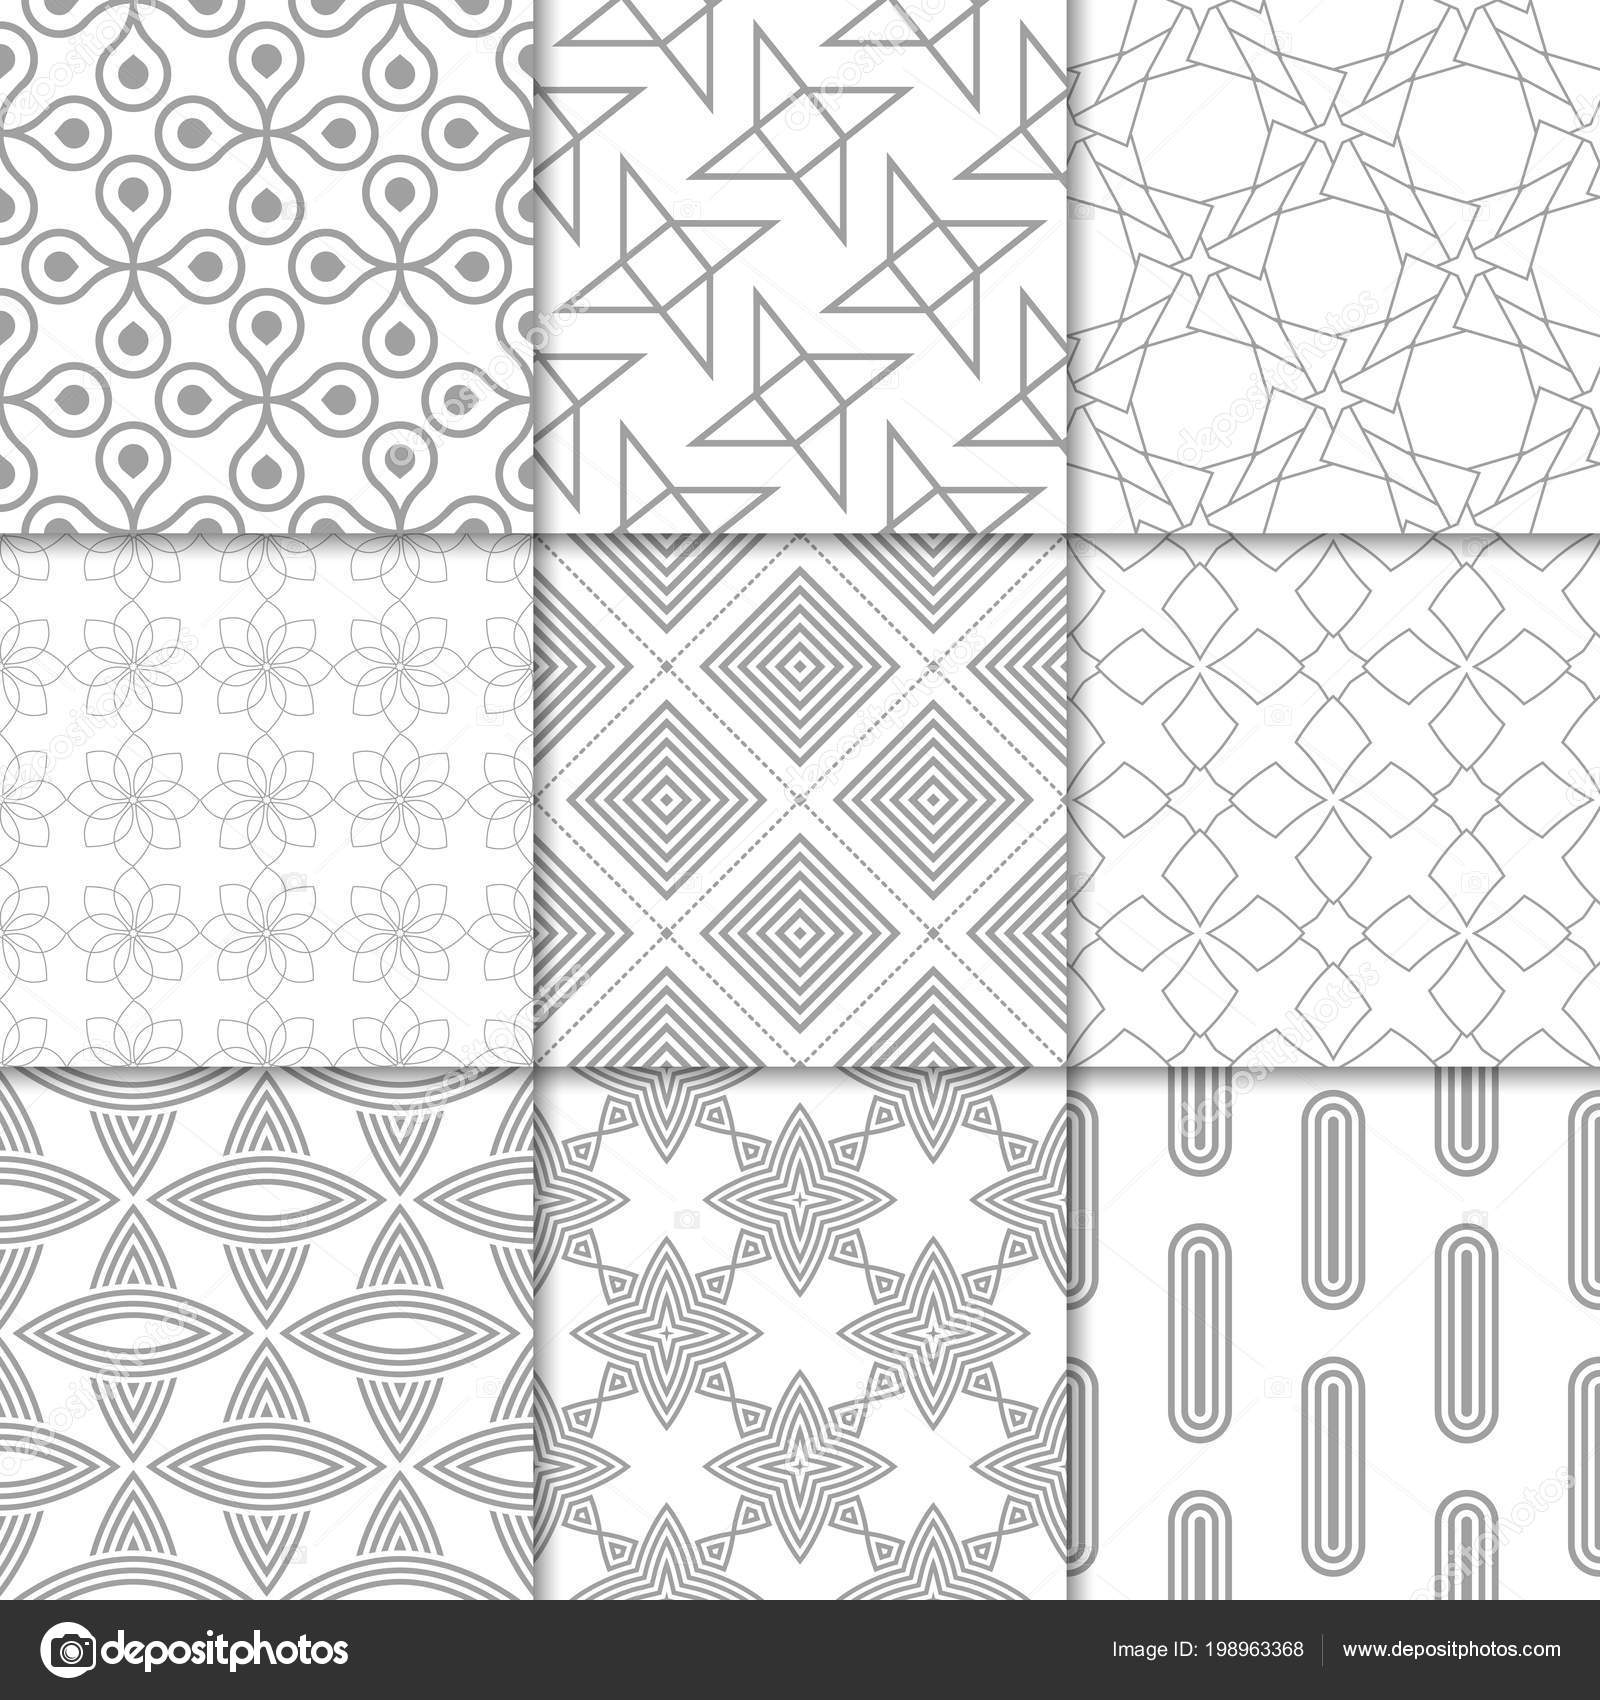 Light Gray Geometric Ornaments Collection Neutral Seamless Patterns Web Textile